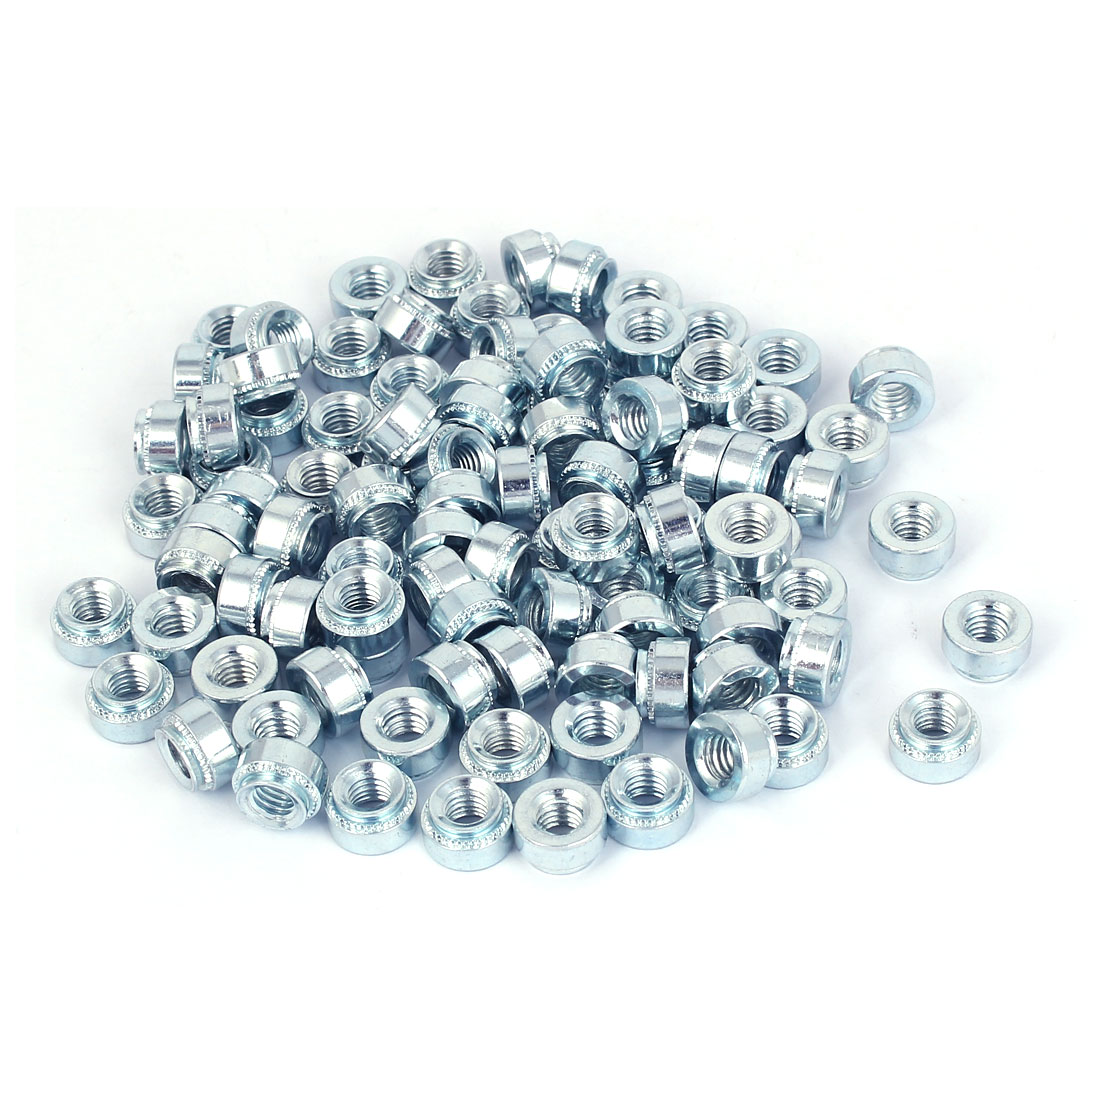 Carbon Steel Self Clinching Rivet Nut S-M6-2 100pcs for 2.3mm Thin Plates